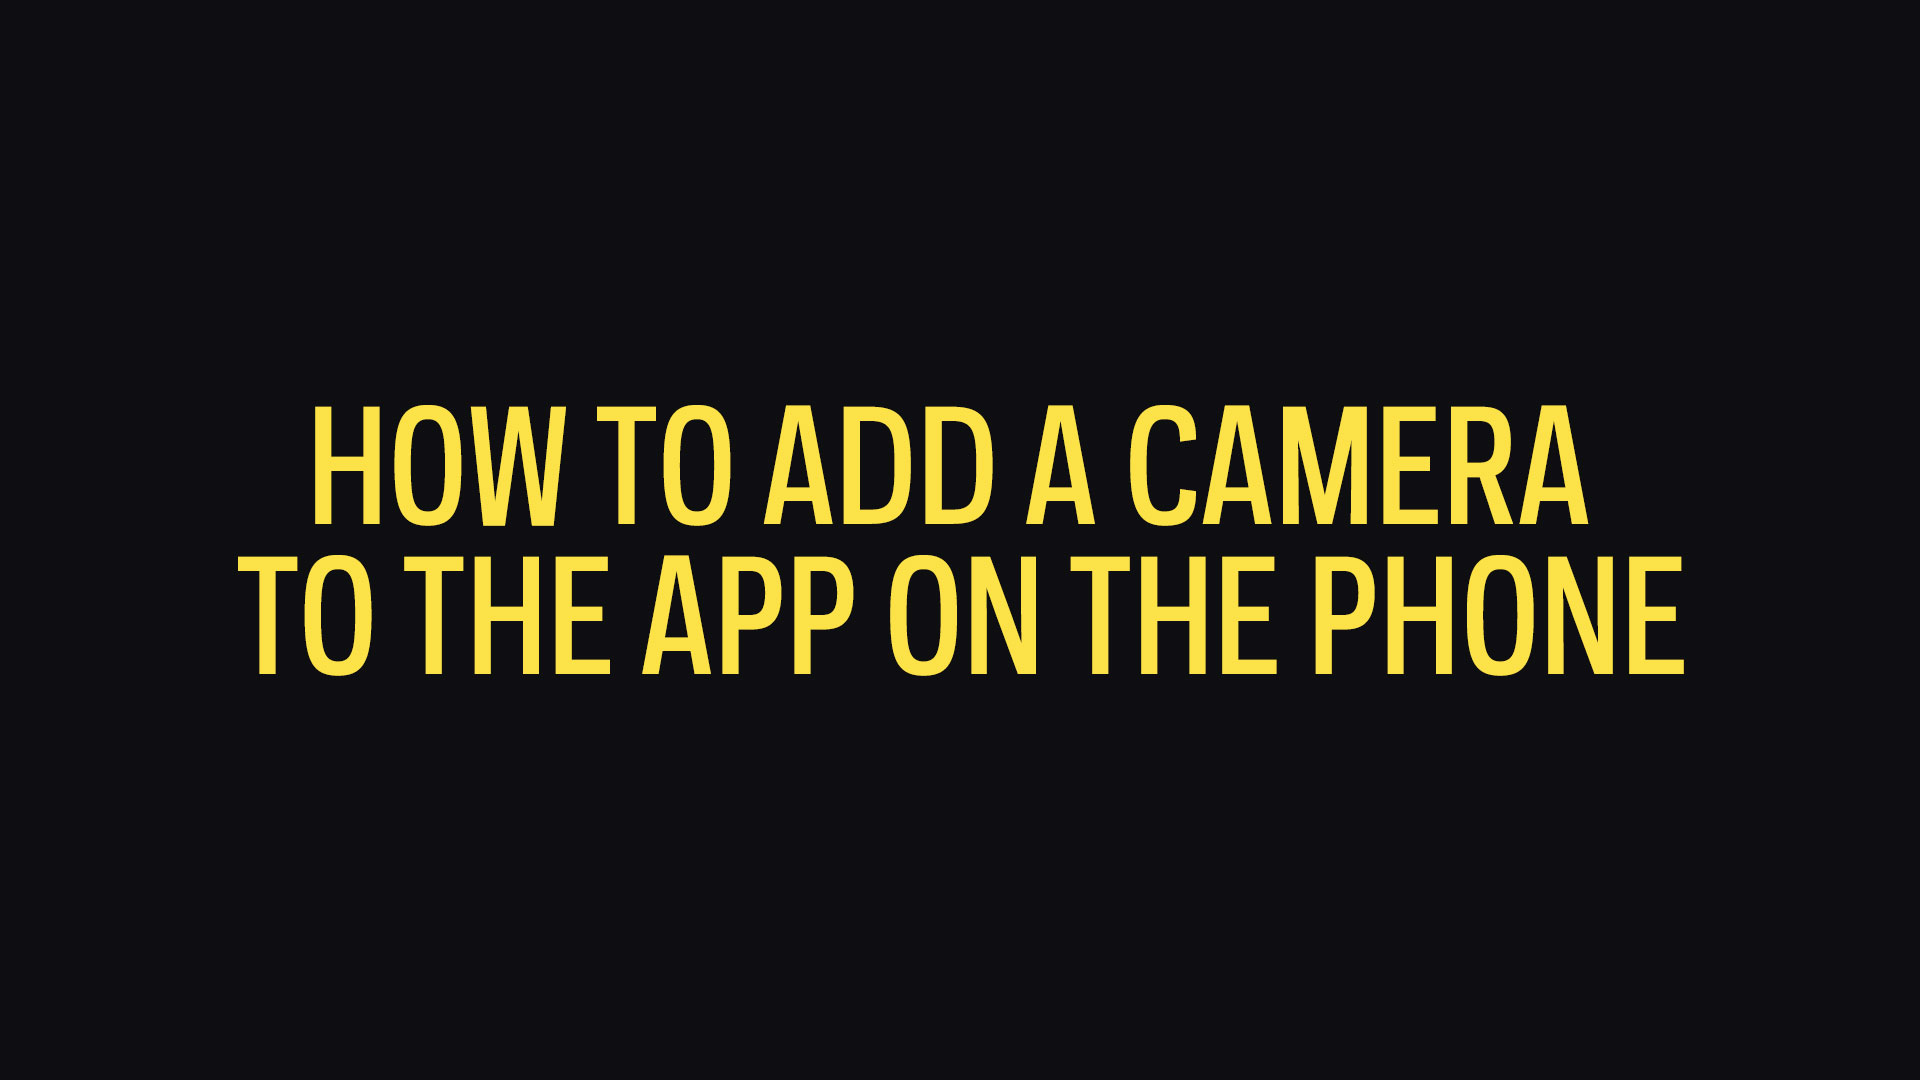 How To Add An Camera To The App On The Phone